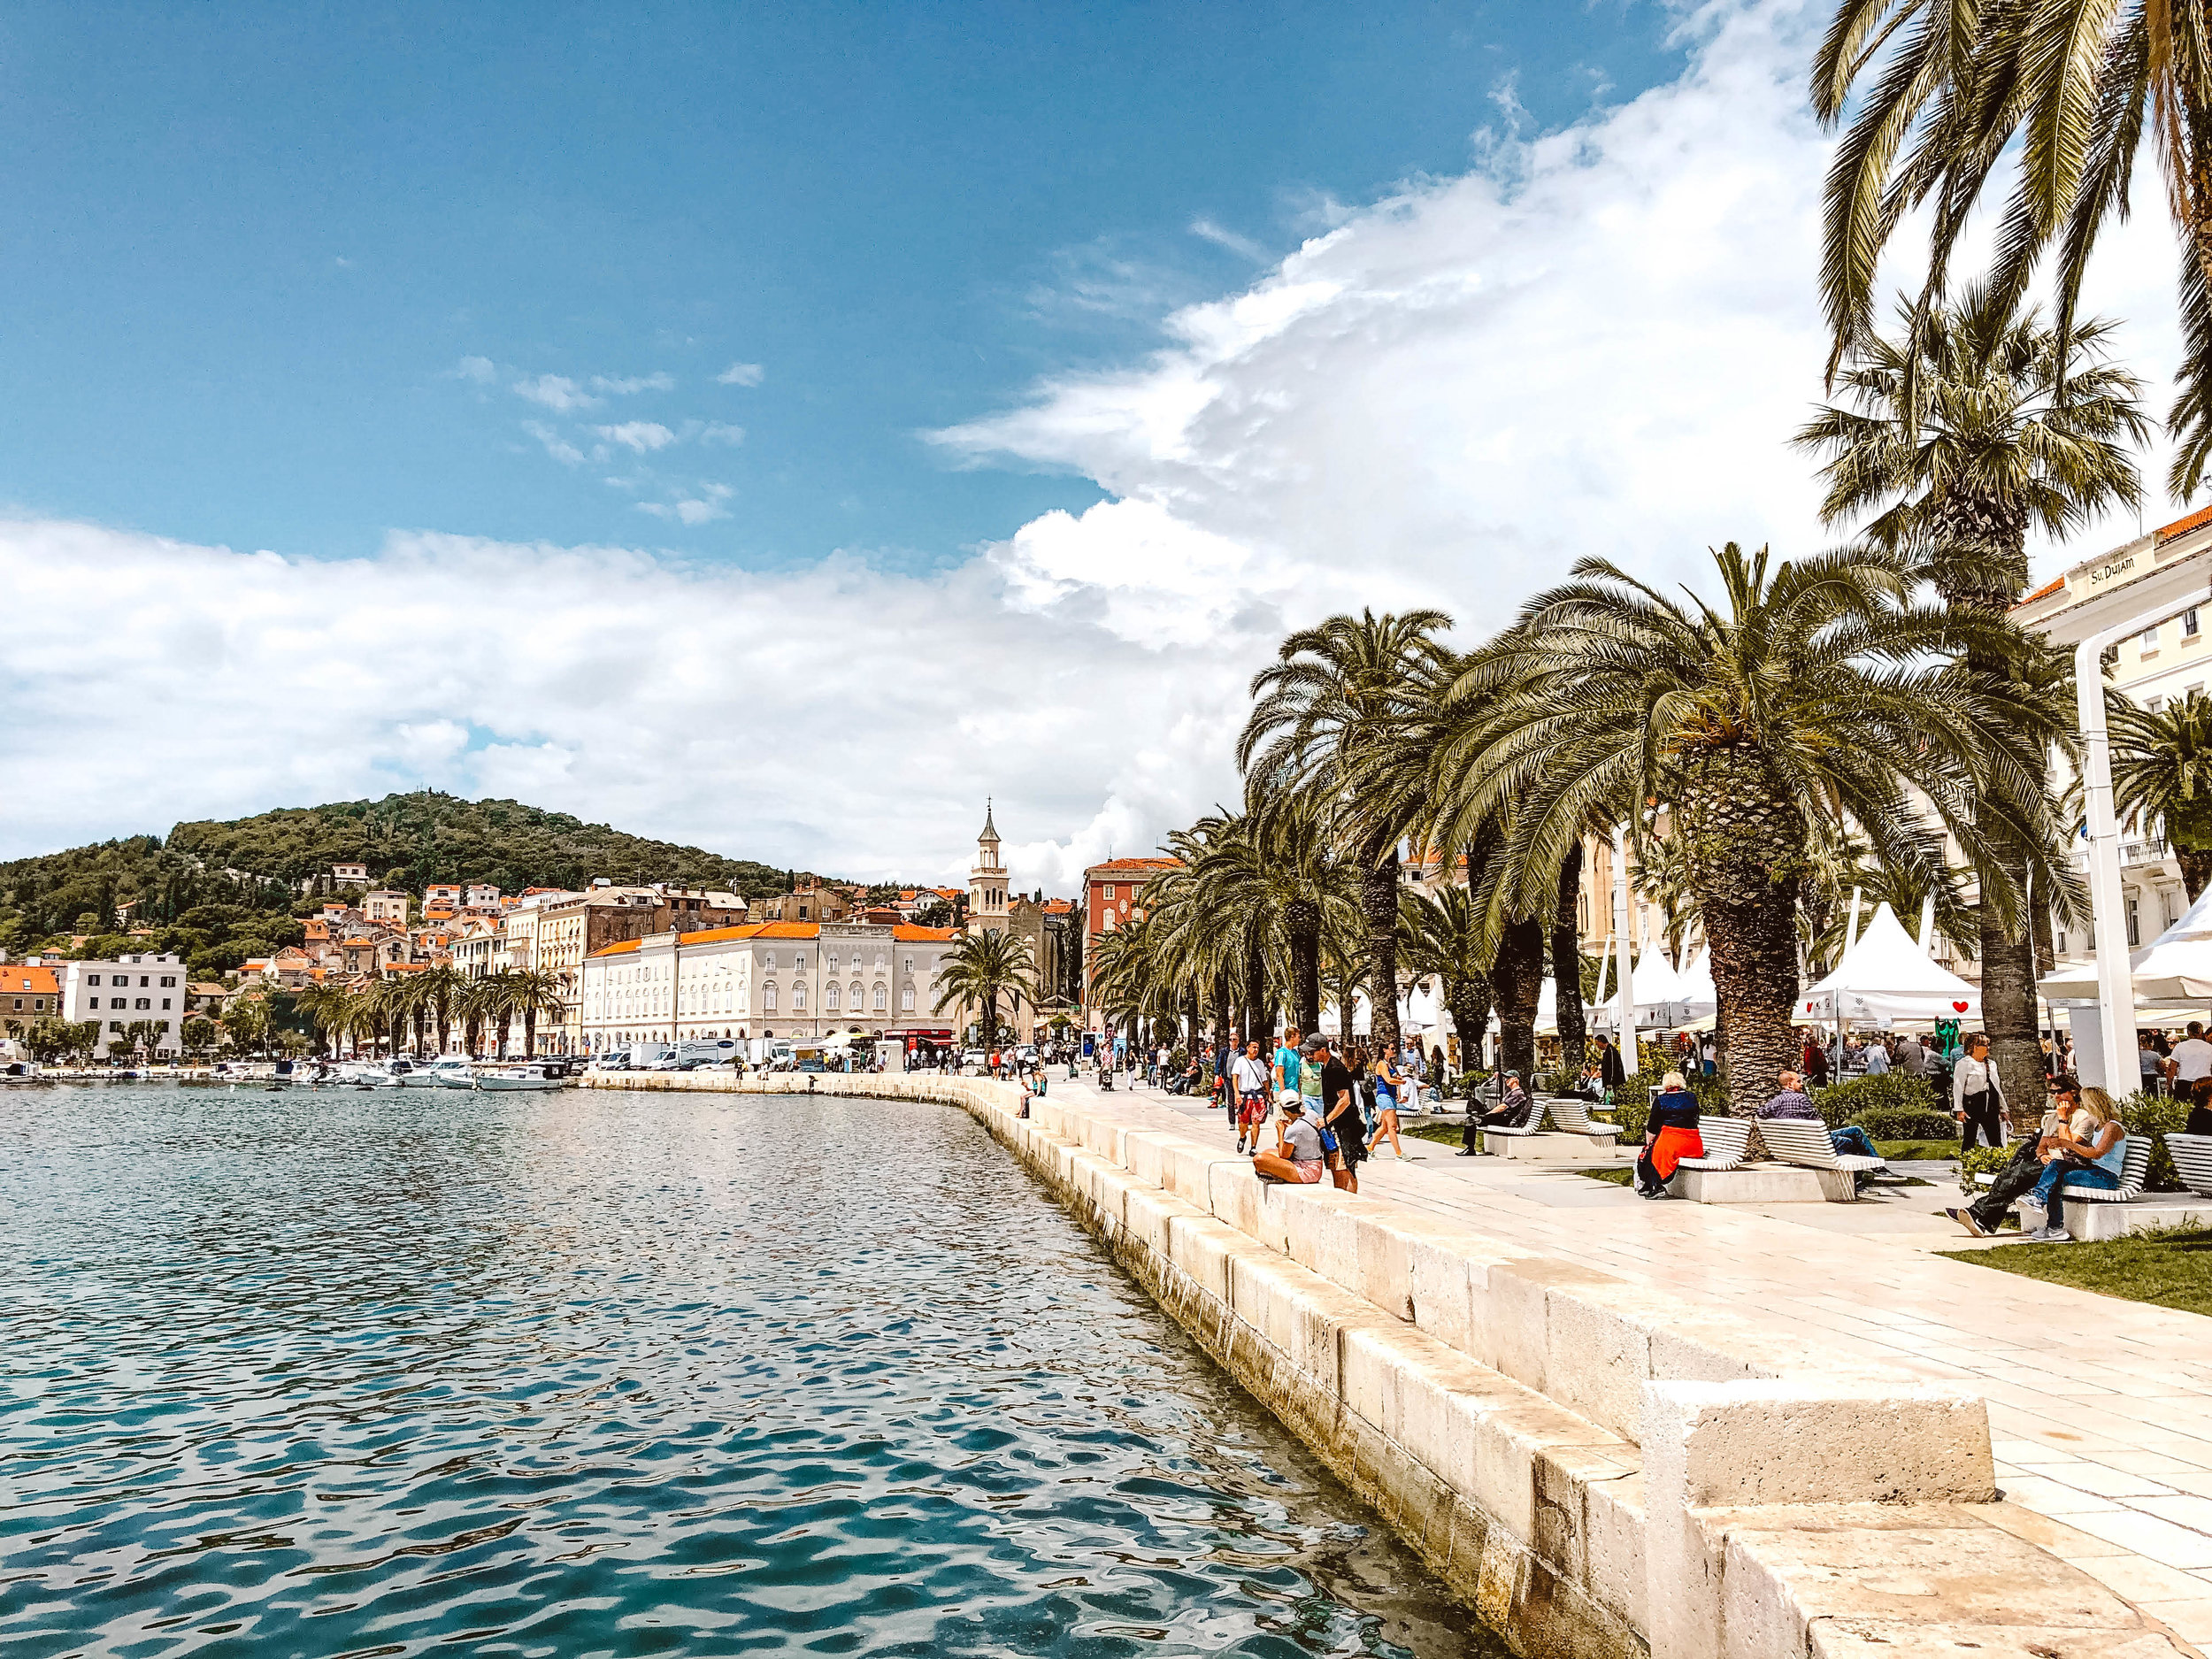 Marina in Split, Croatia